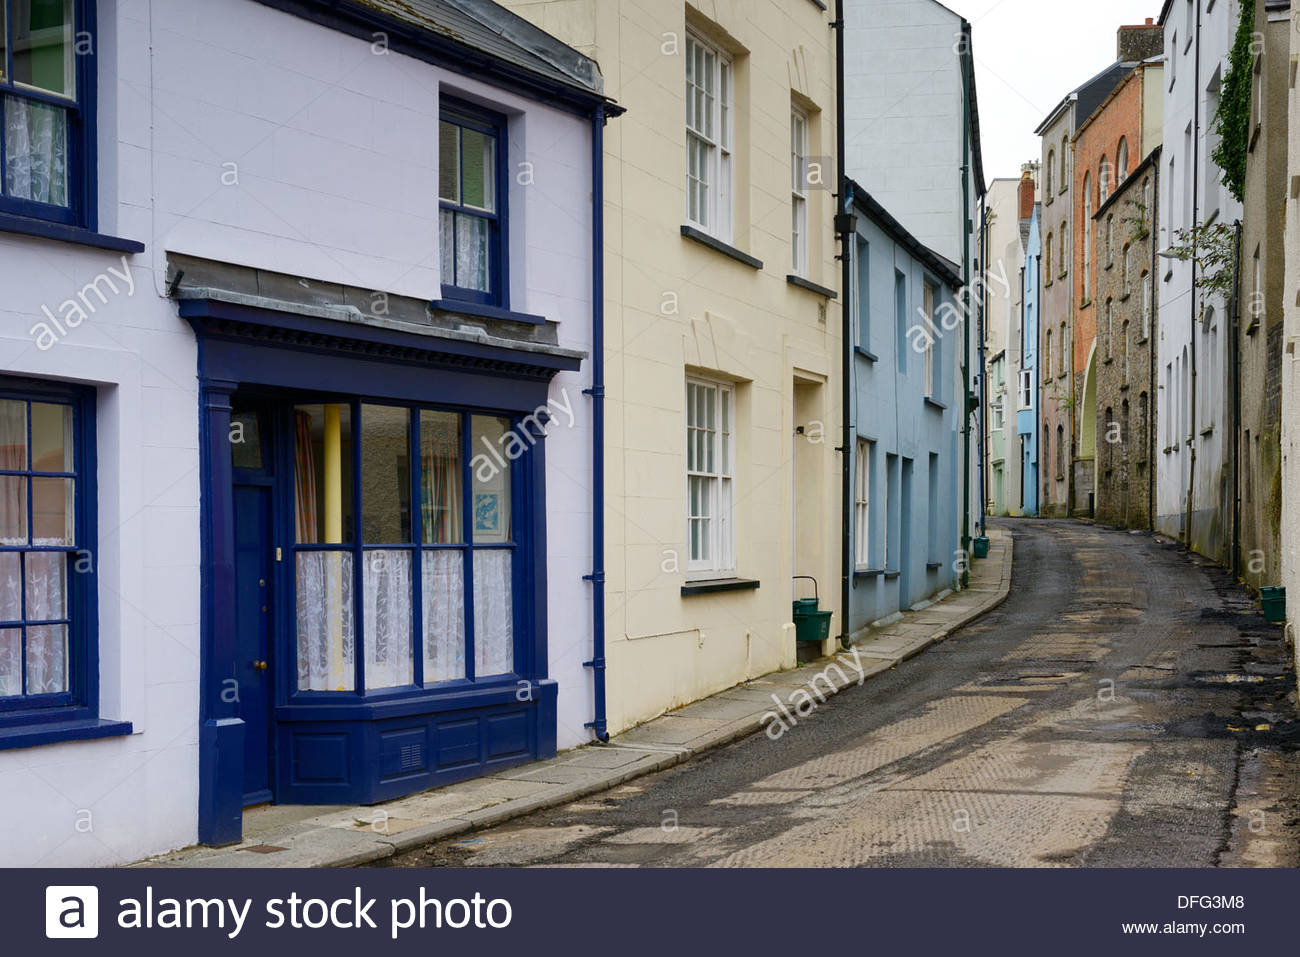 Dark Street, urban decay, Haverfordwest, Wales Britain UK - Stock Image